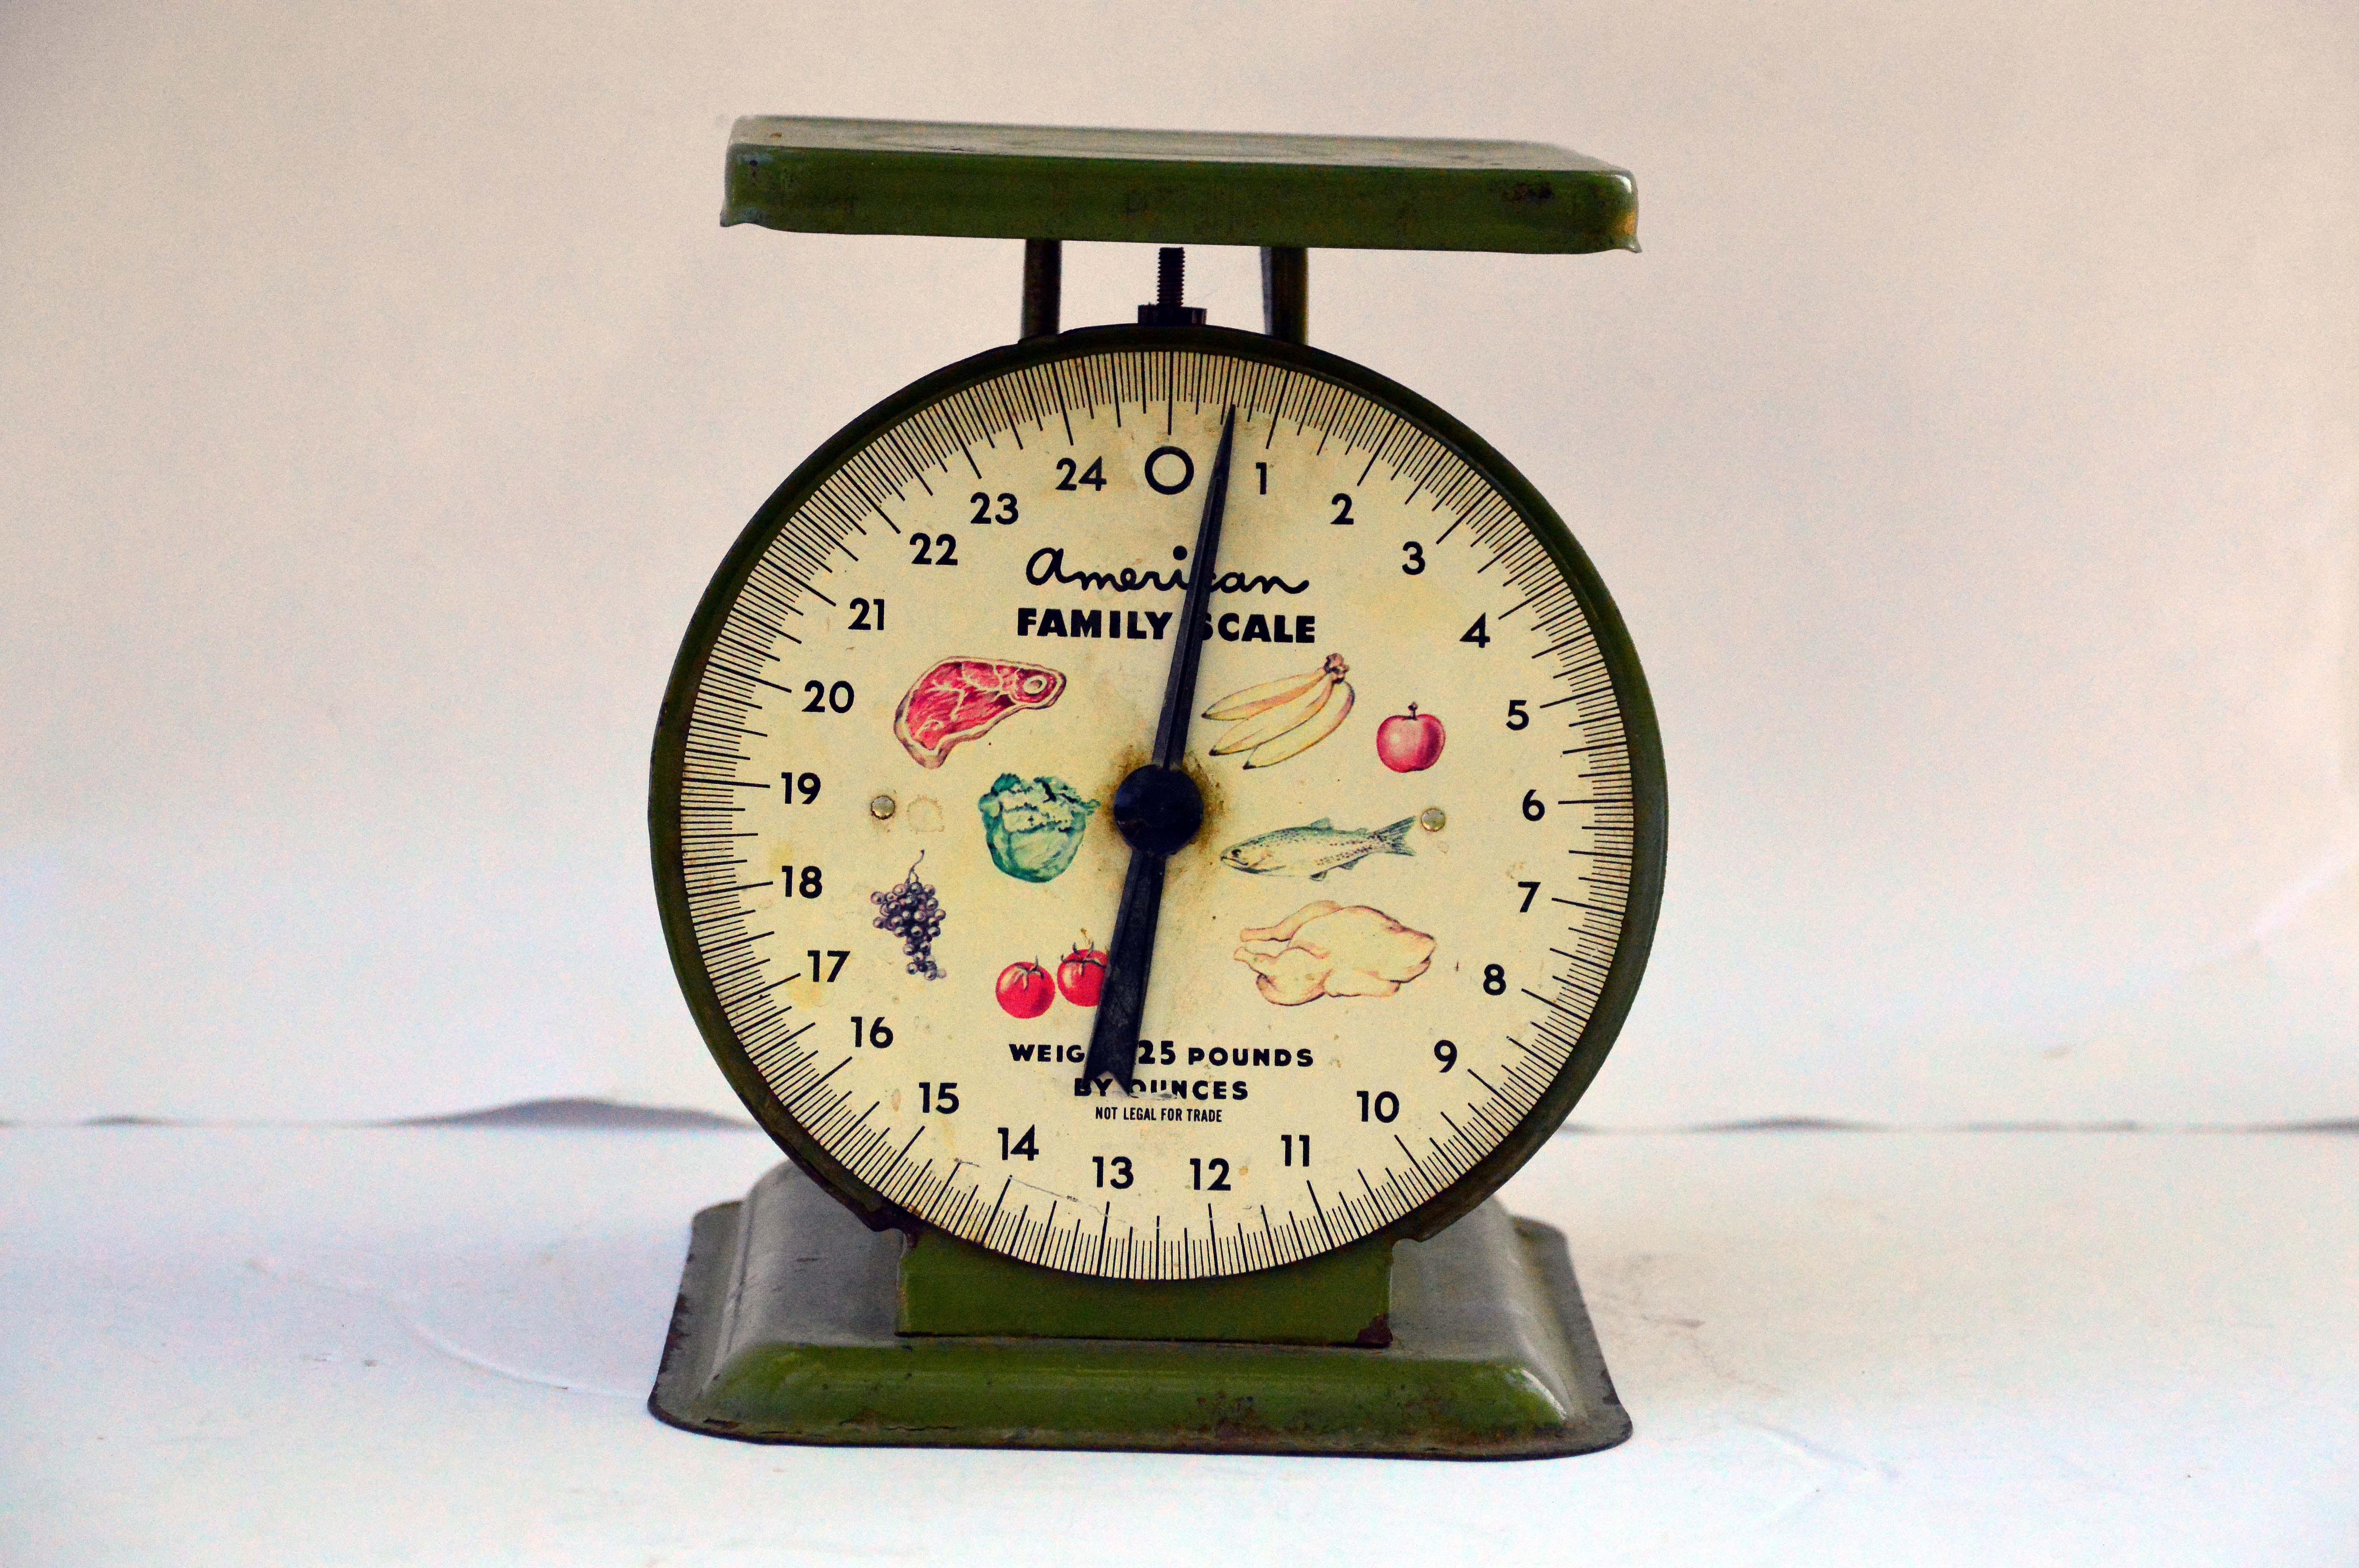 Vintage American Family Scale Kings Auction Appraisal